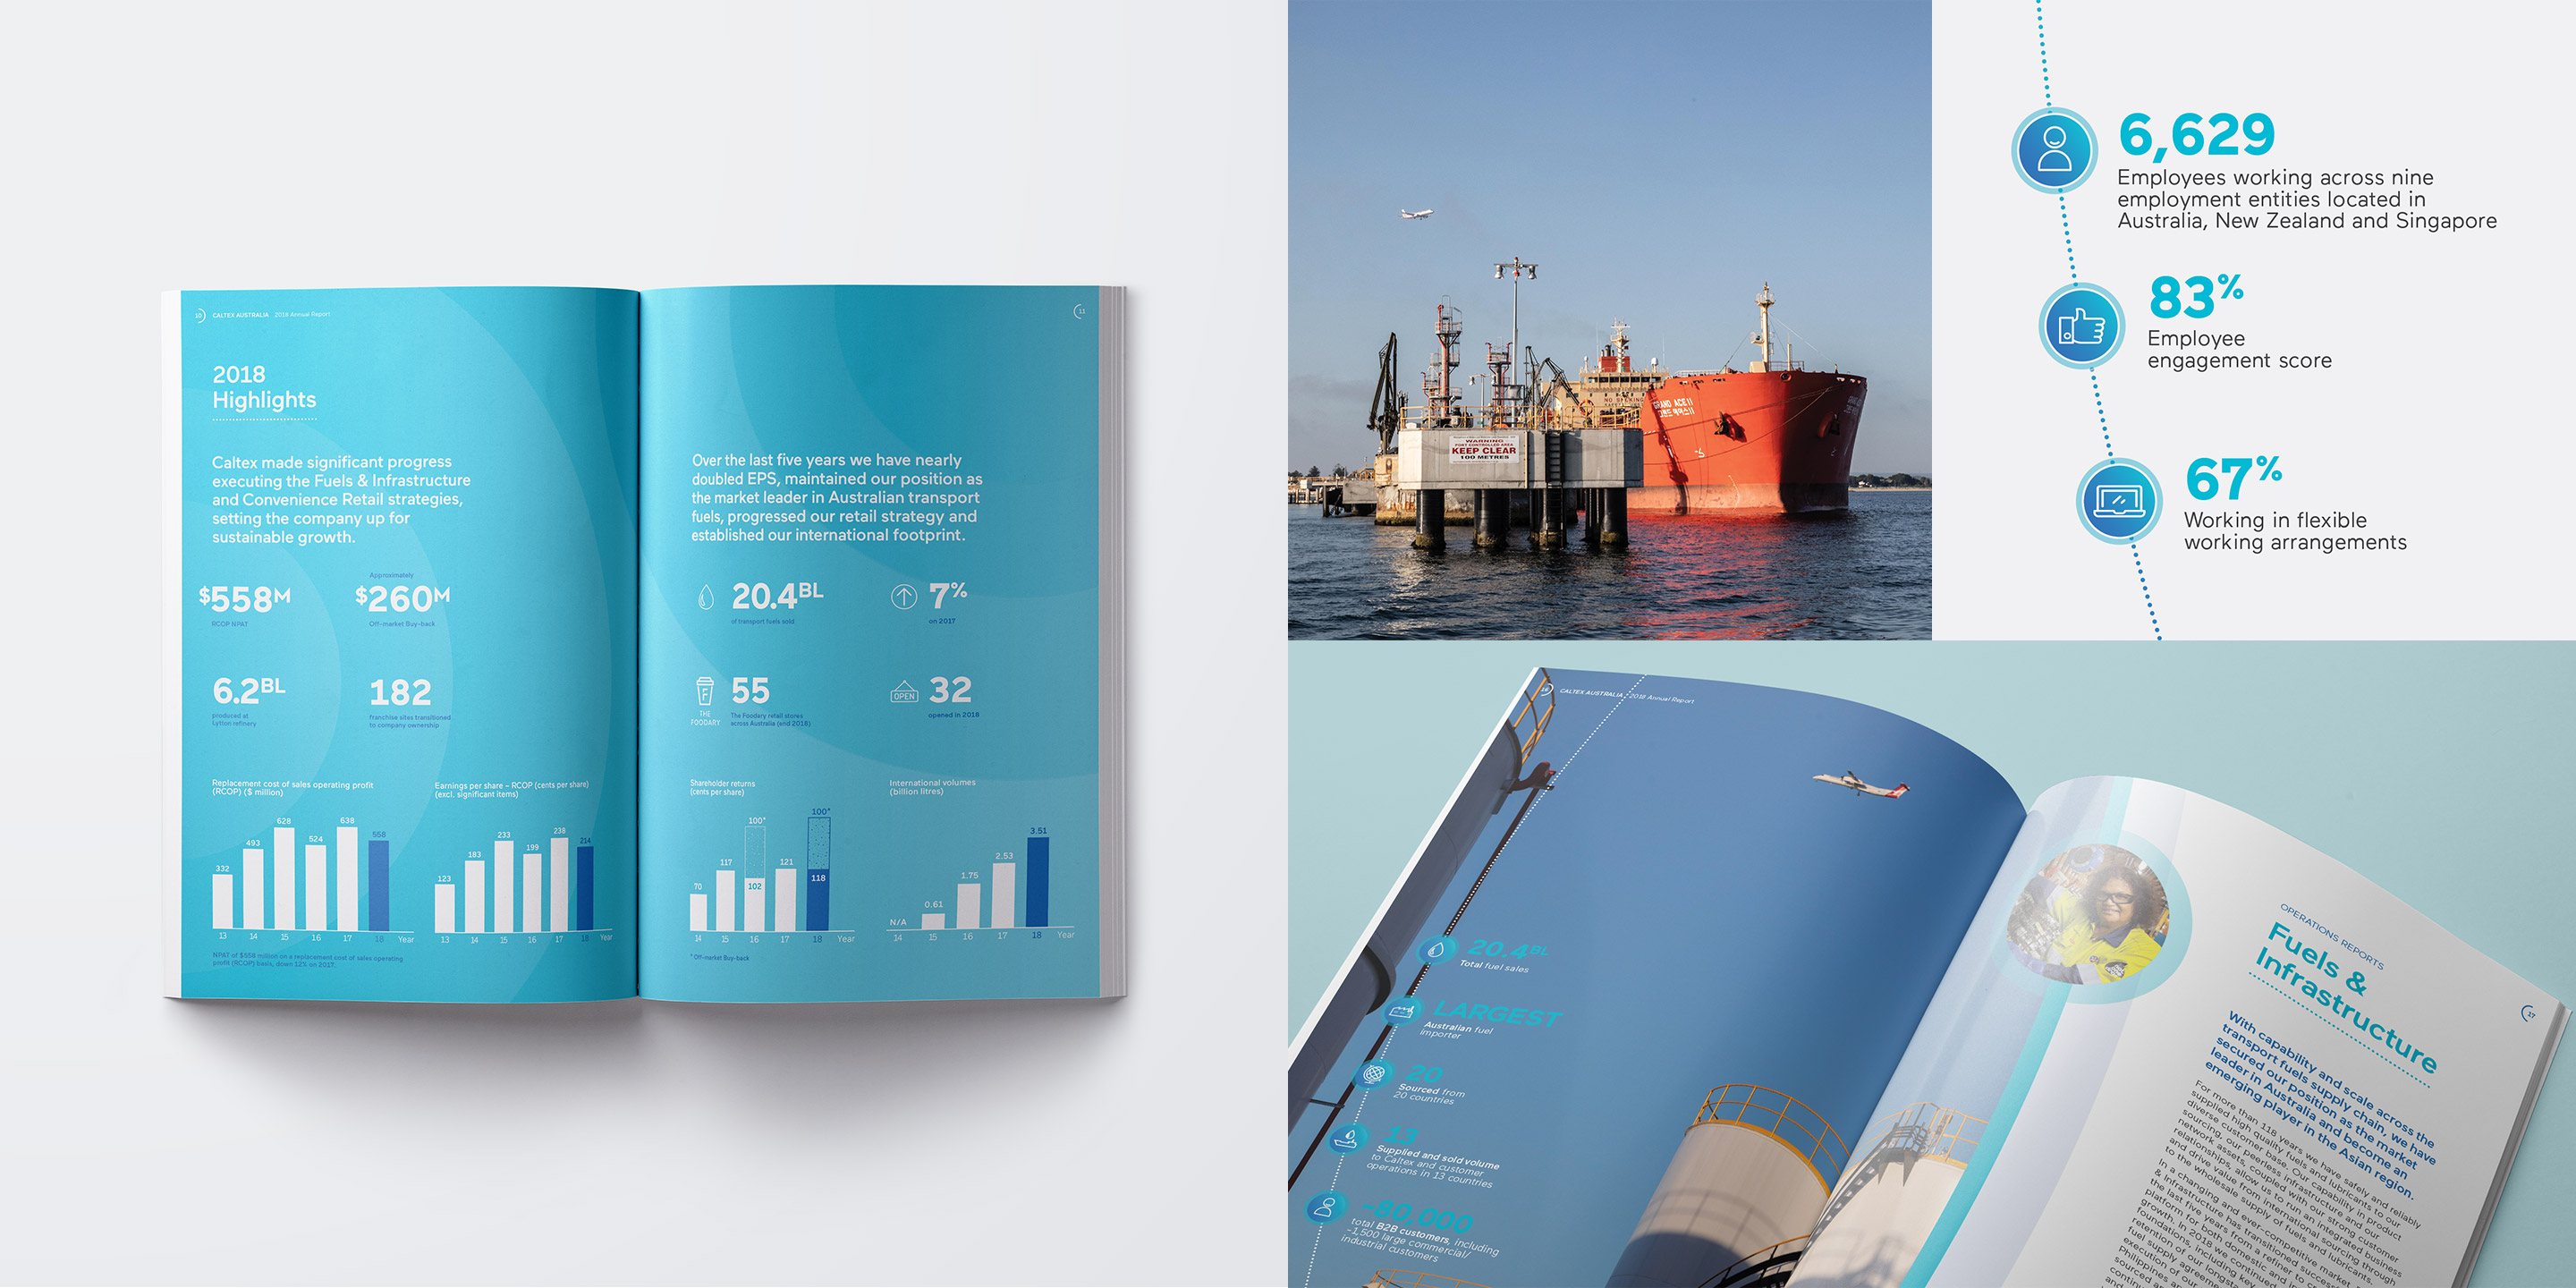 Caltex. Annual Report. Inside spreads, photography and infographic detail.